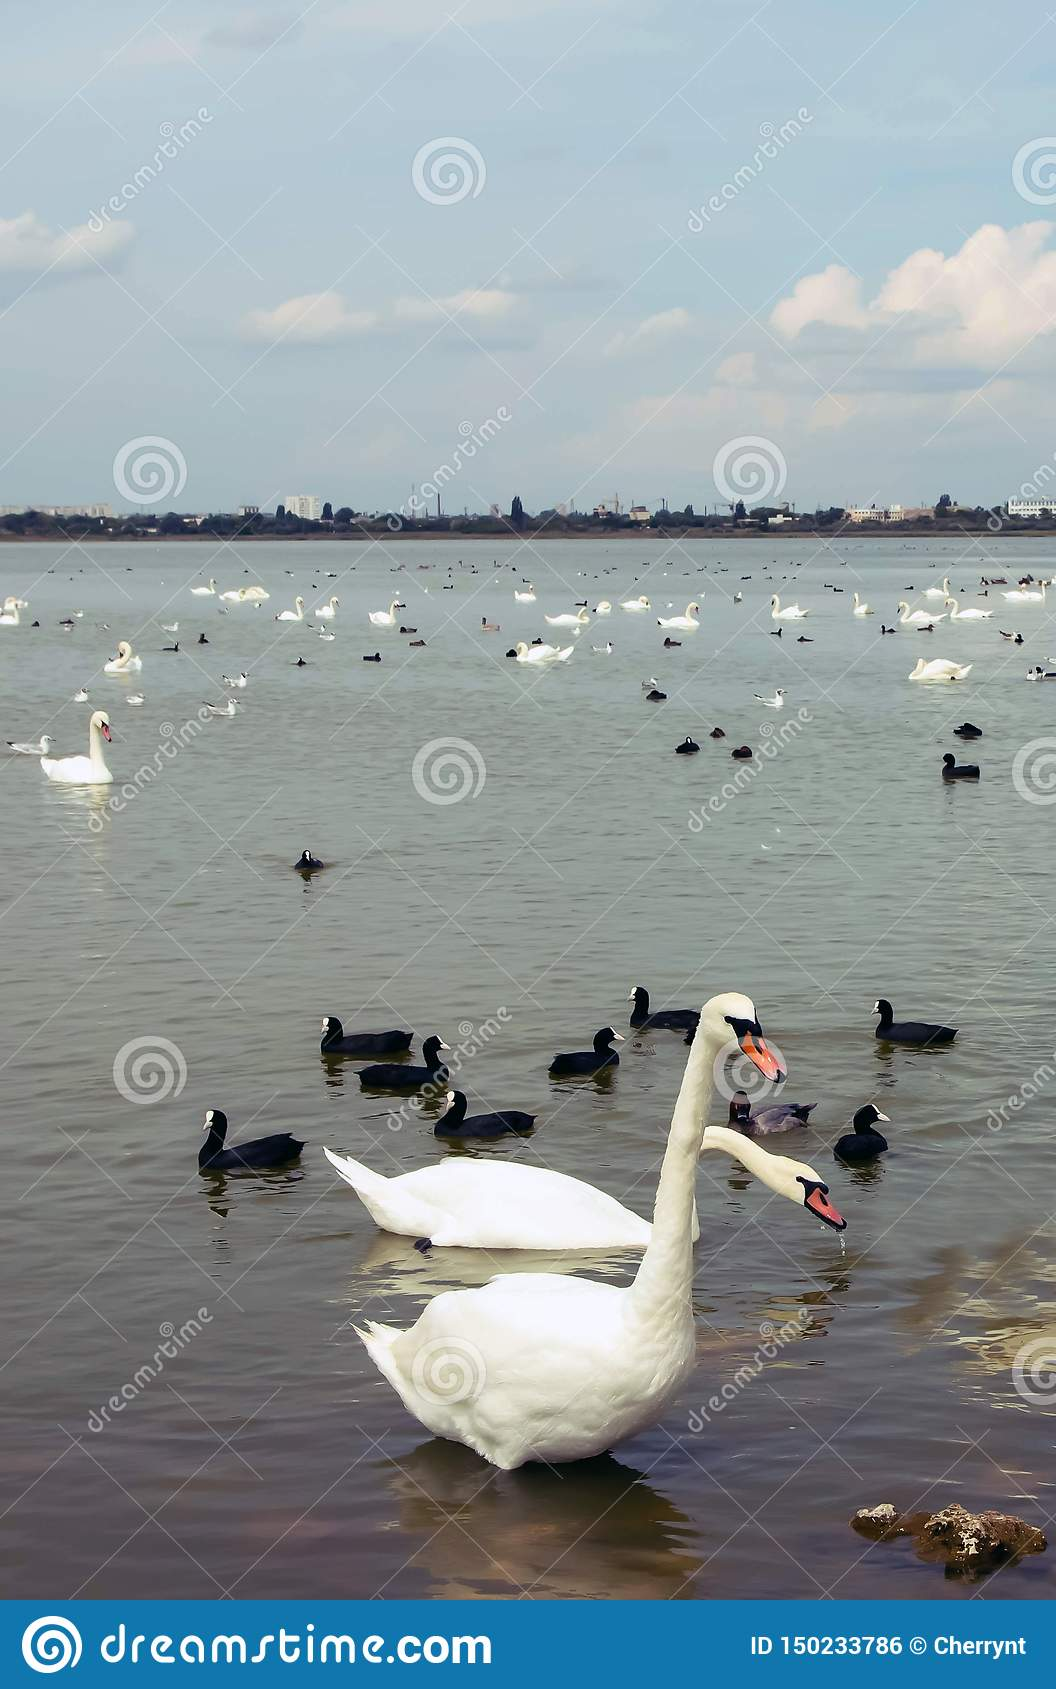 A large white swans on the water, with little black swans